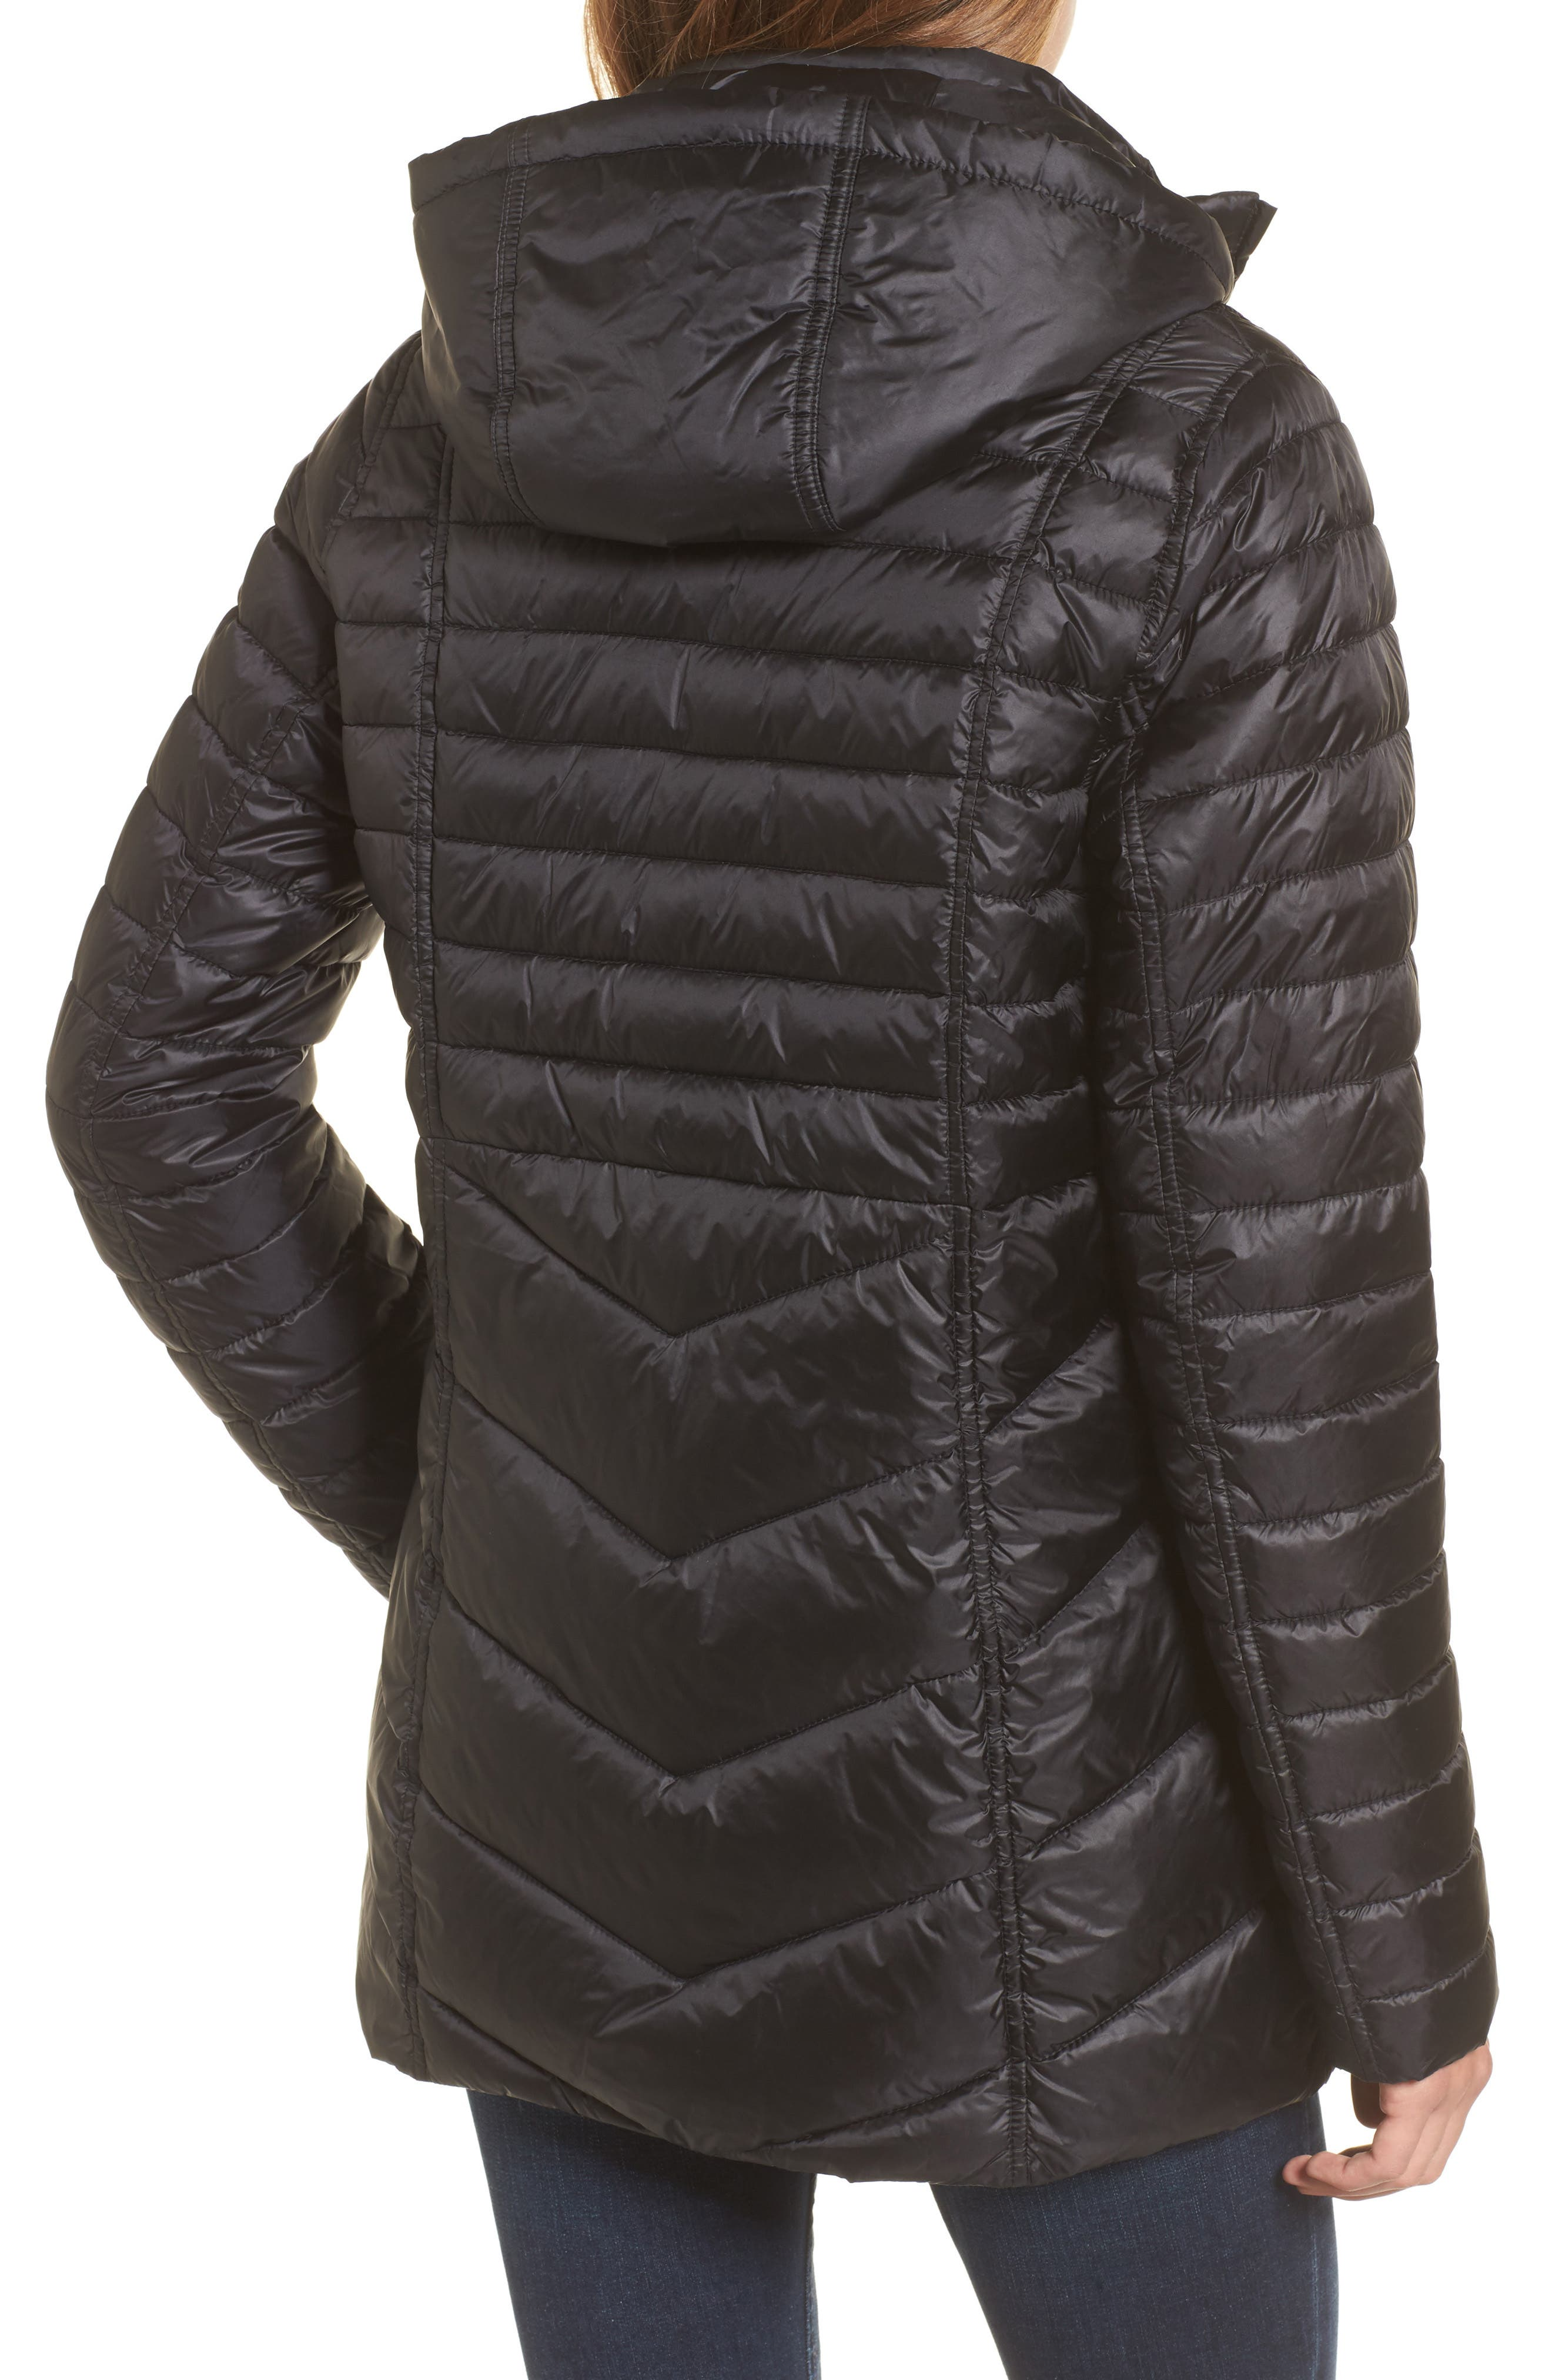 Linton Hooded Water Resistant Quilted Jacket,                             Alternate thumbnail 2, color,                             001